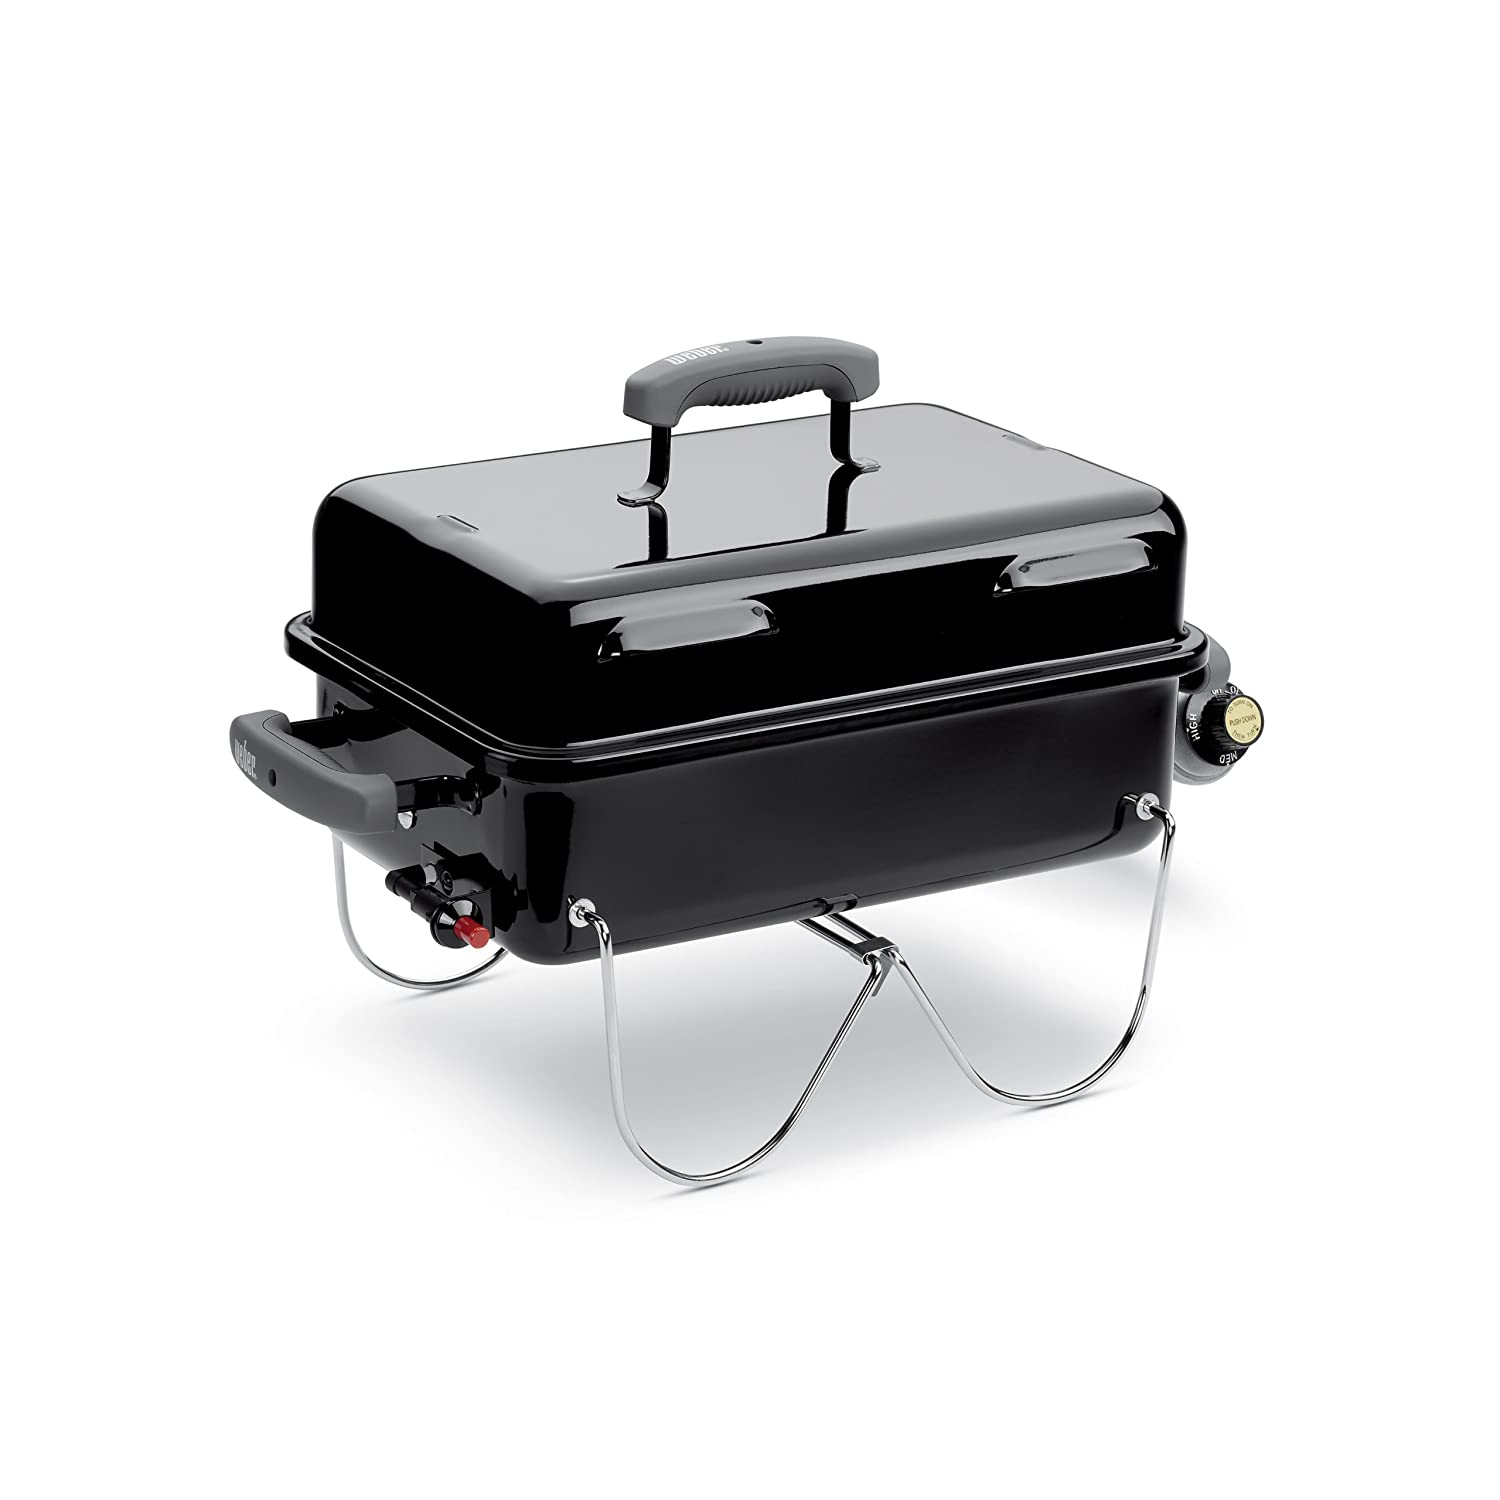 Weber Portable Gas Bbq.Weber 1141001 Go Anywhere Gas Grill One Size Black